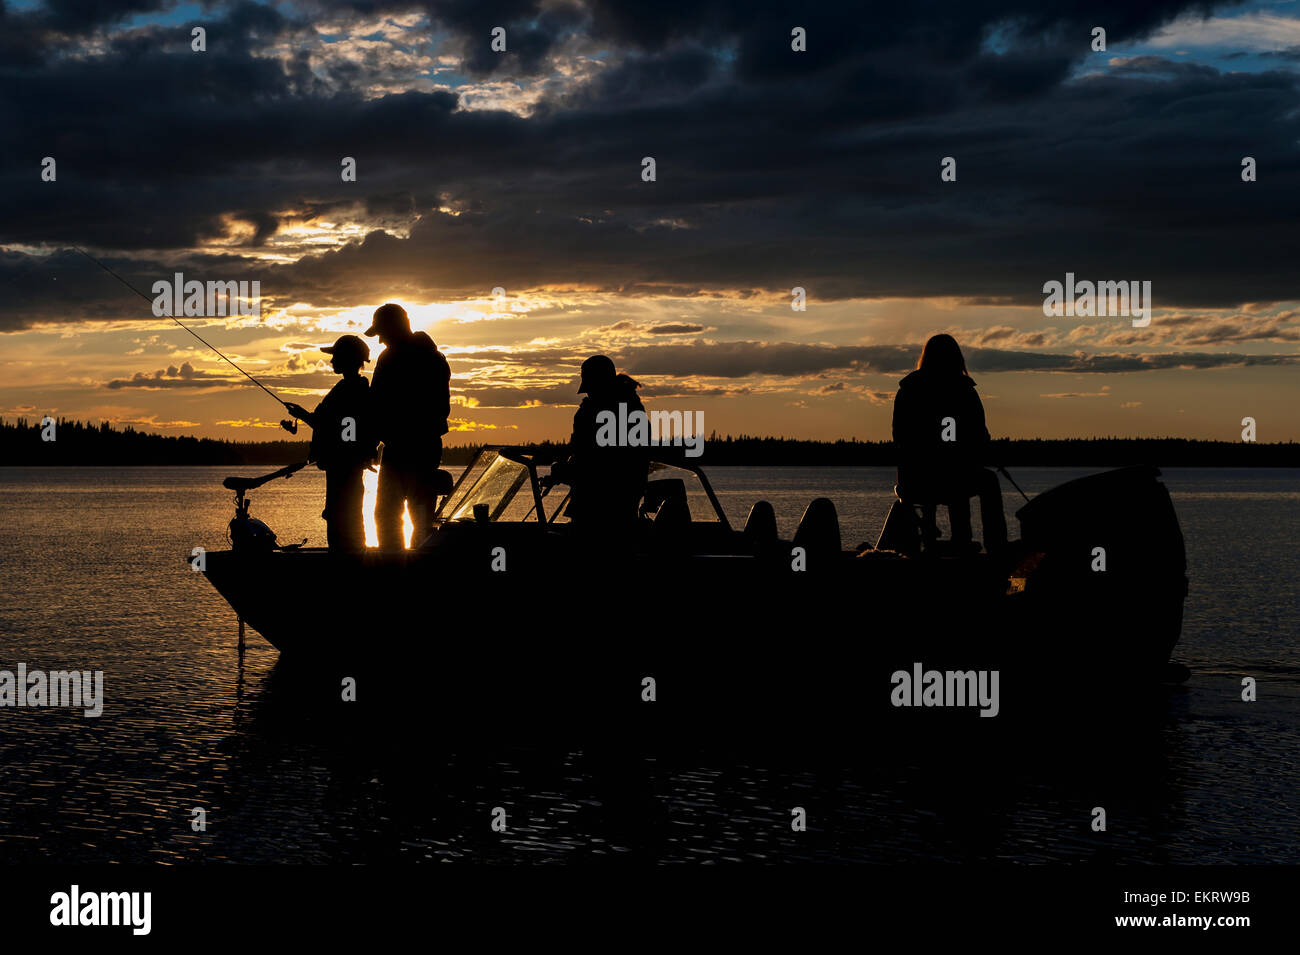 Silhouette of a family fishing from their motorboat on a lake at sunset in Northern Ontario; Ontario, Canada - Stock Image